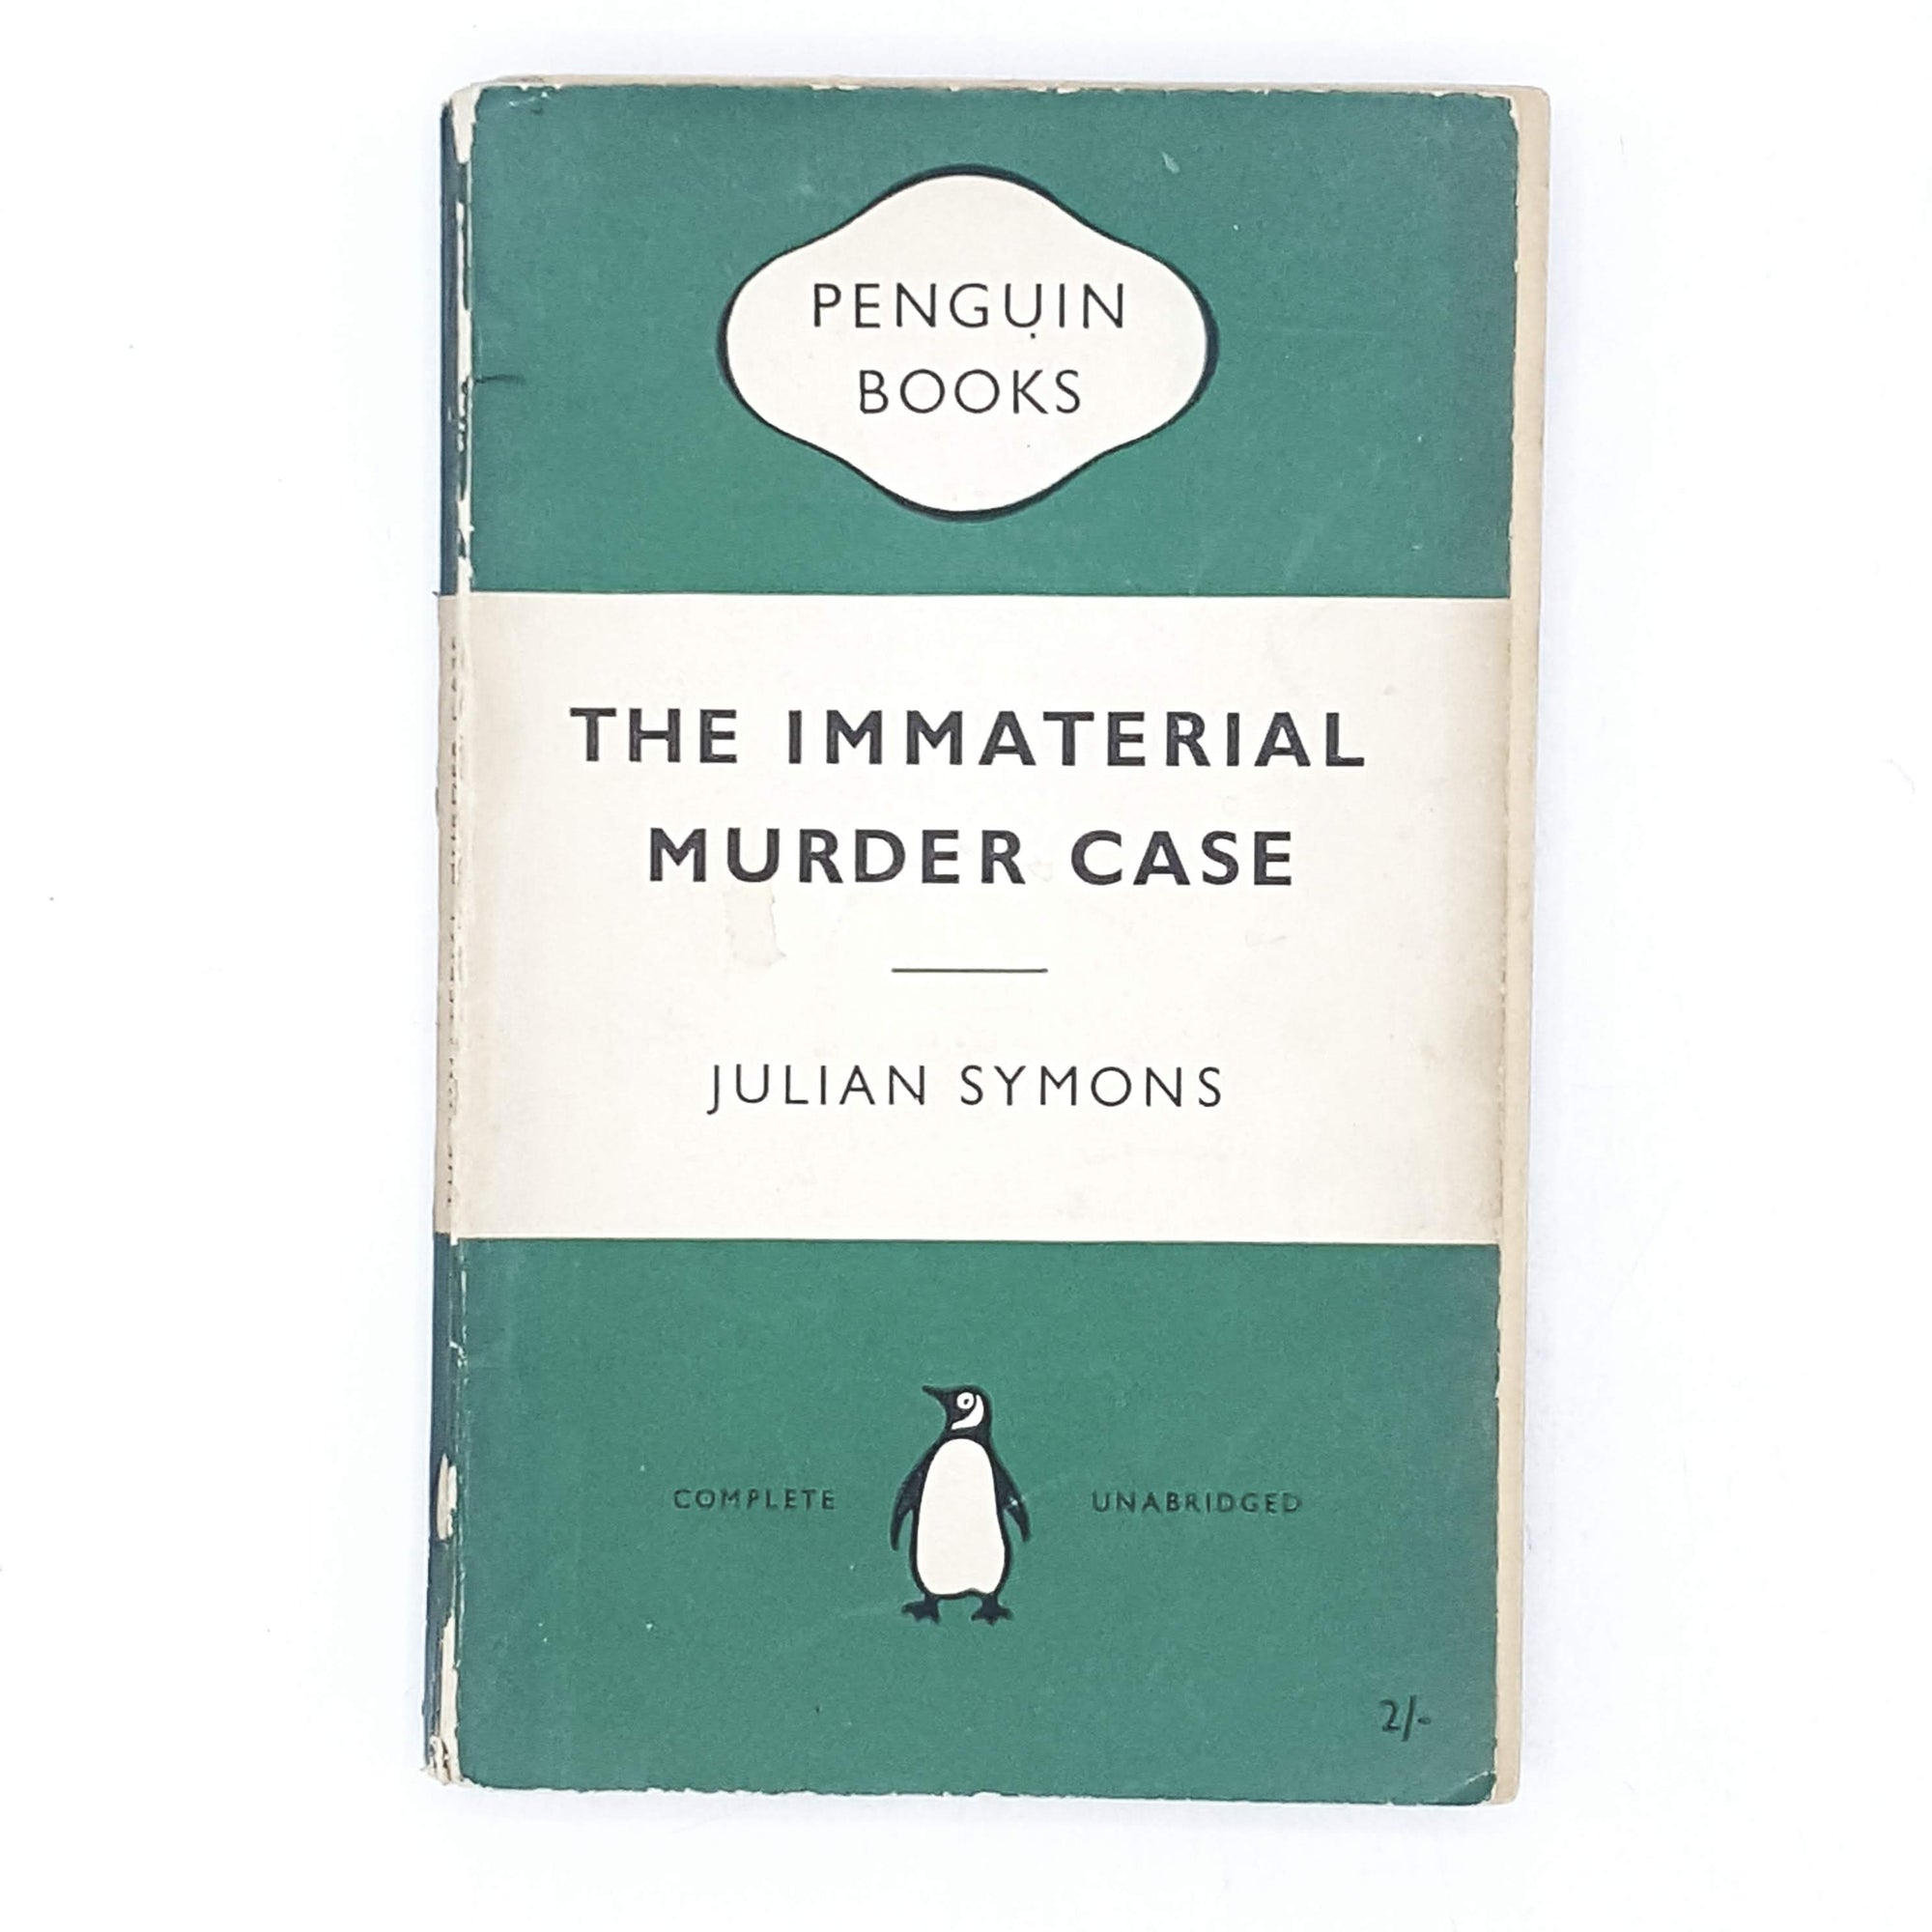 The Immaterial Murder Case by Julian Symons 1954